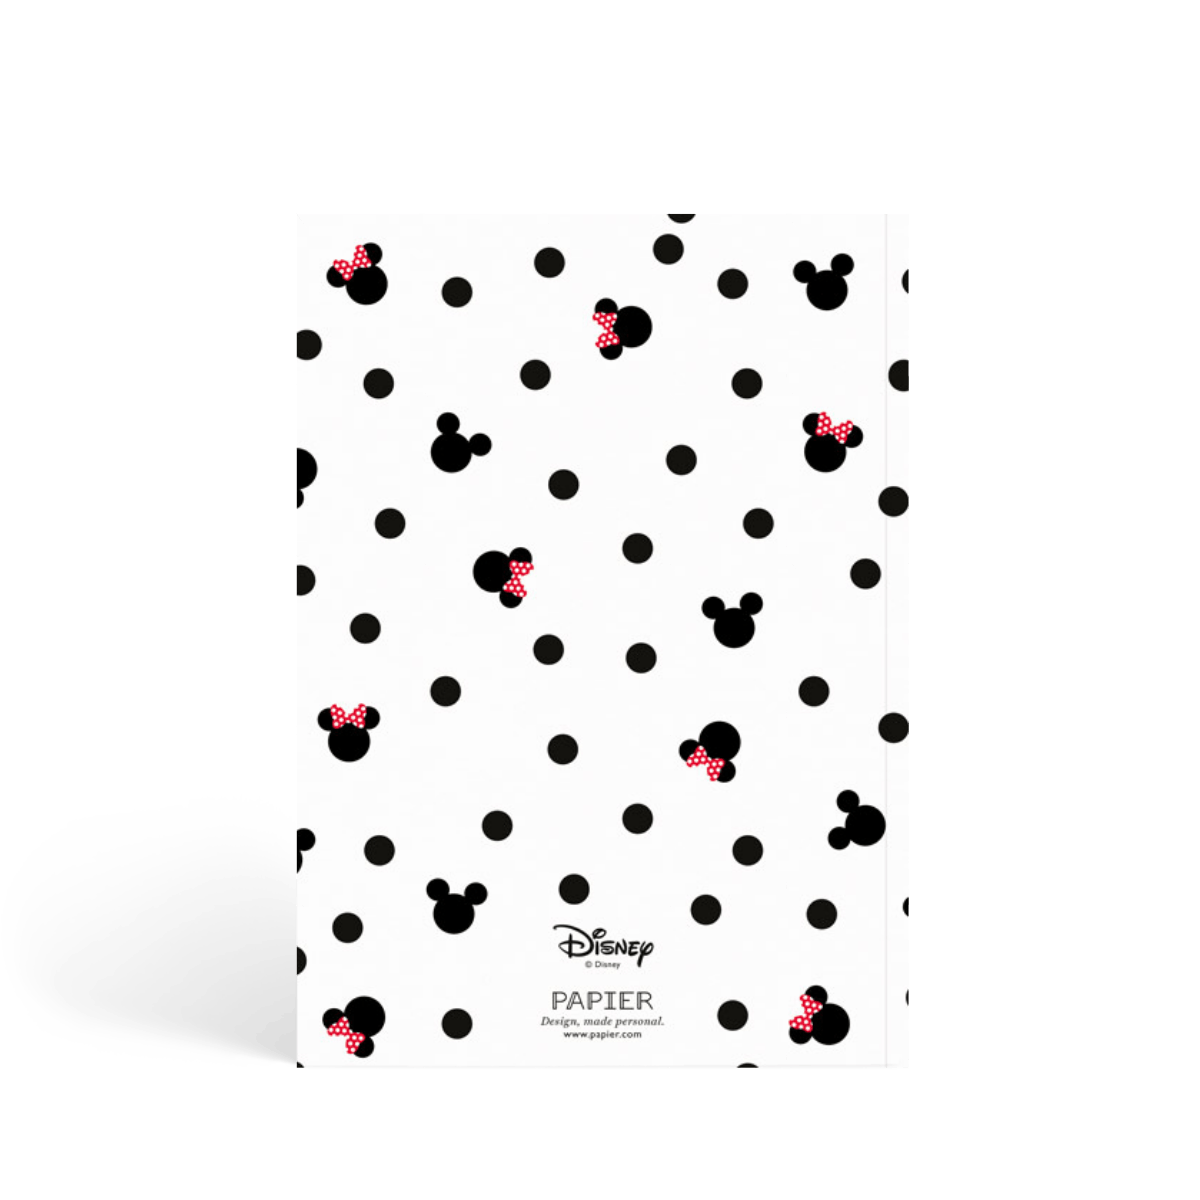 Https%3a%2f%2fwww.papier.com%2fproduct image%2f55809%2f5%2fmickey minnie mouse 13403 rueckseite 1542299800.png?ixlib=rb 1.1